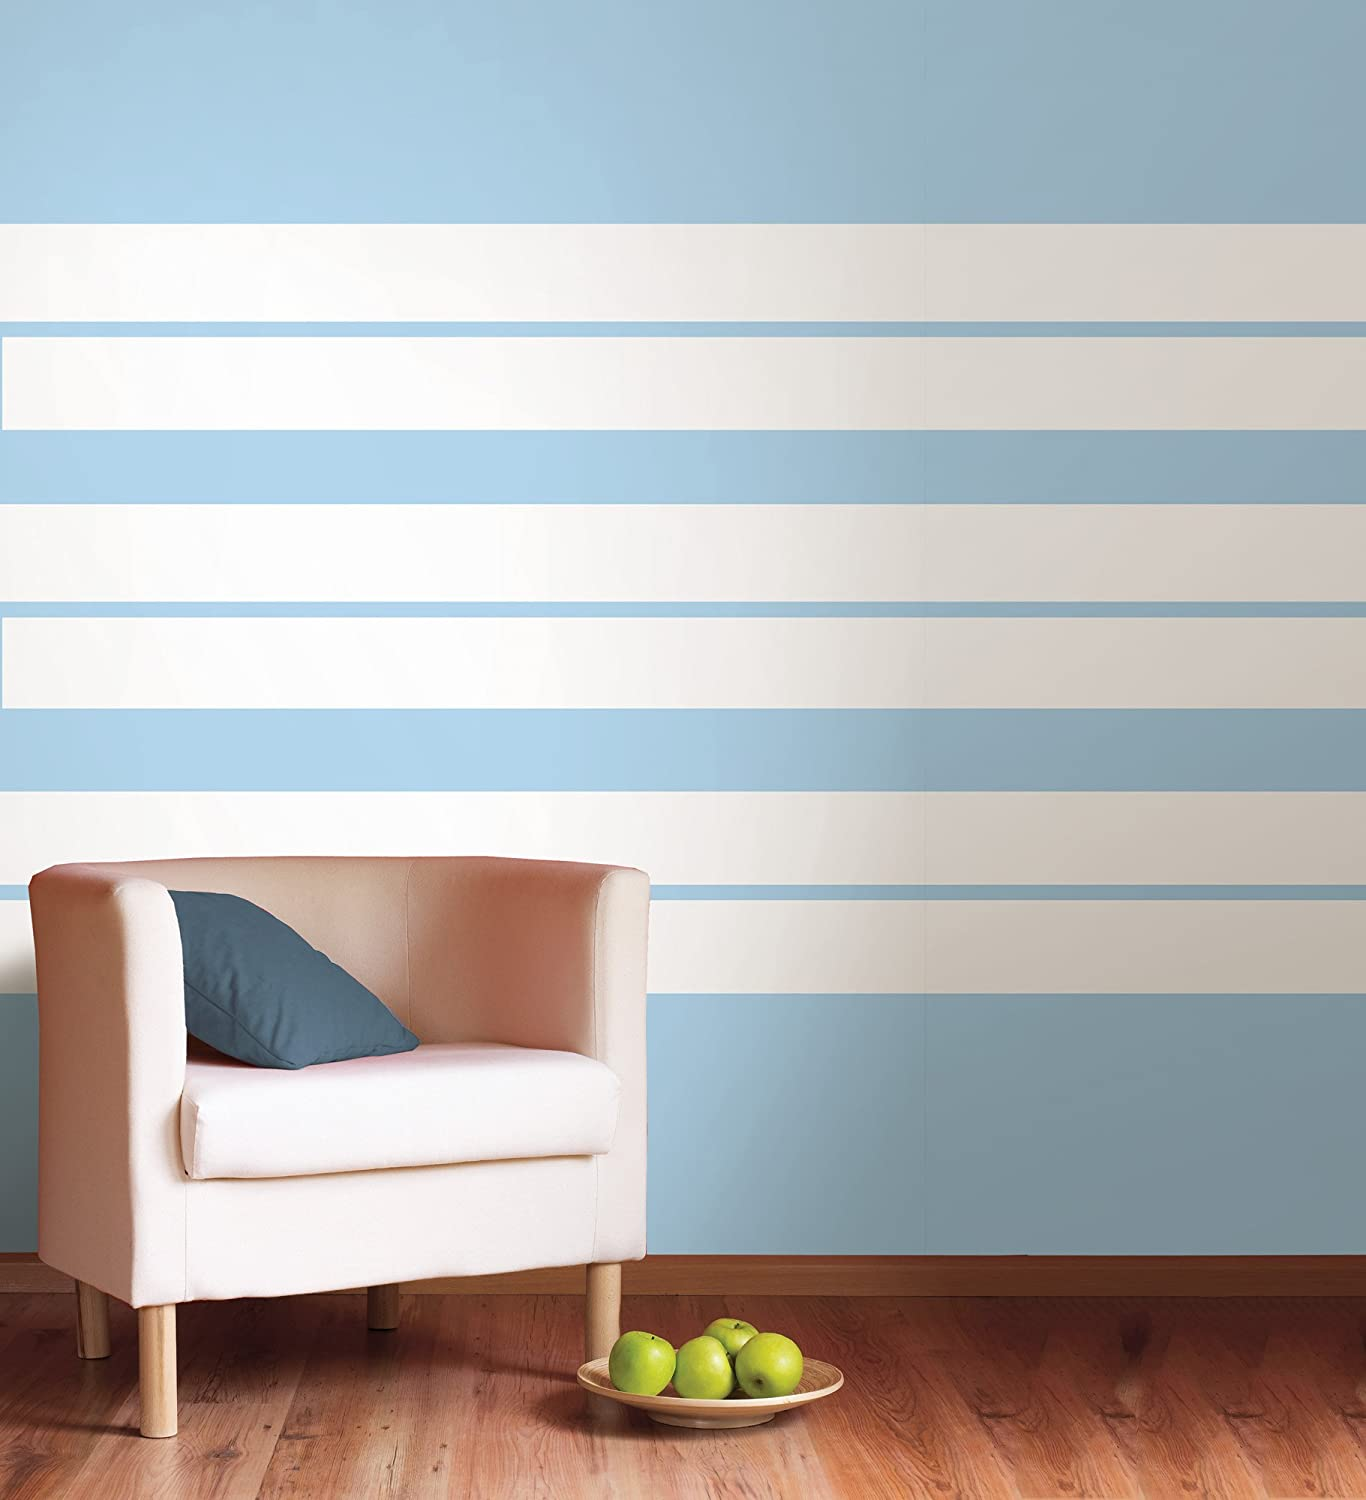 Brewster WPS90205 Wall Pops Ghost Stripe, Single Strip   Decorative Wall  Appliques   Amazon.com